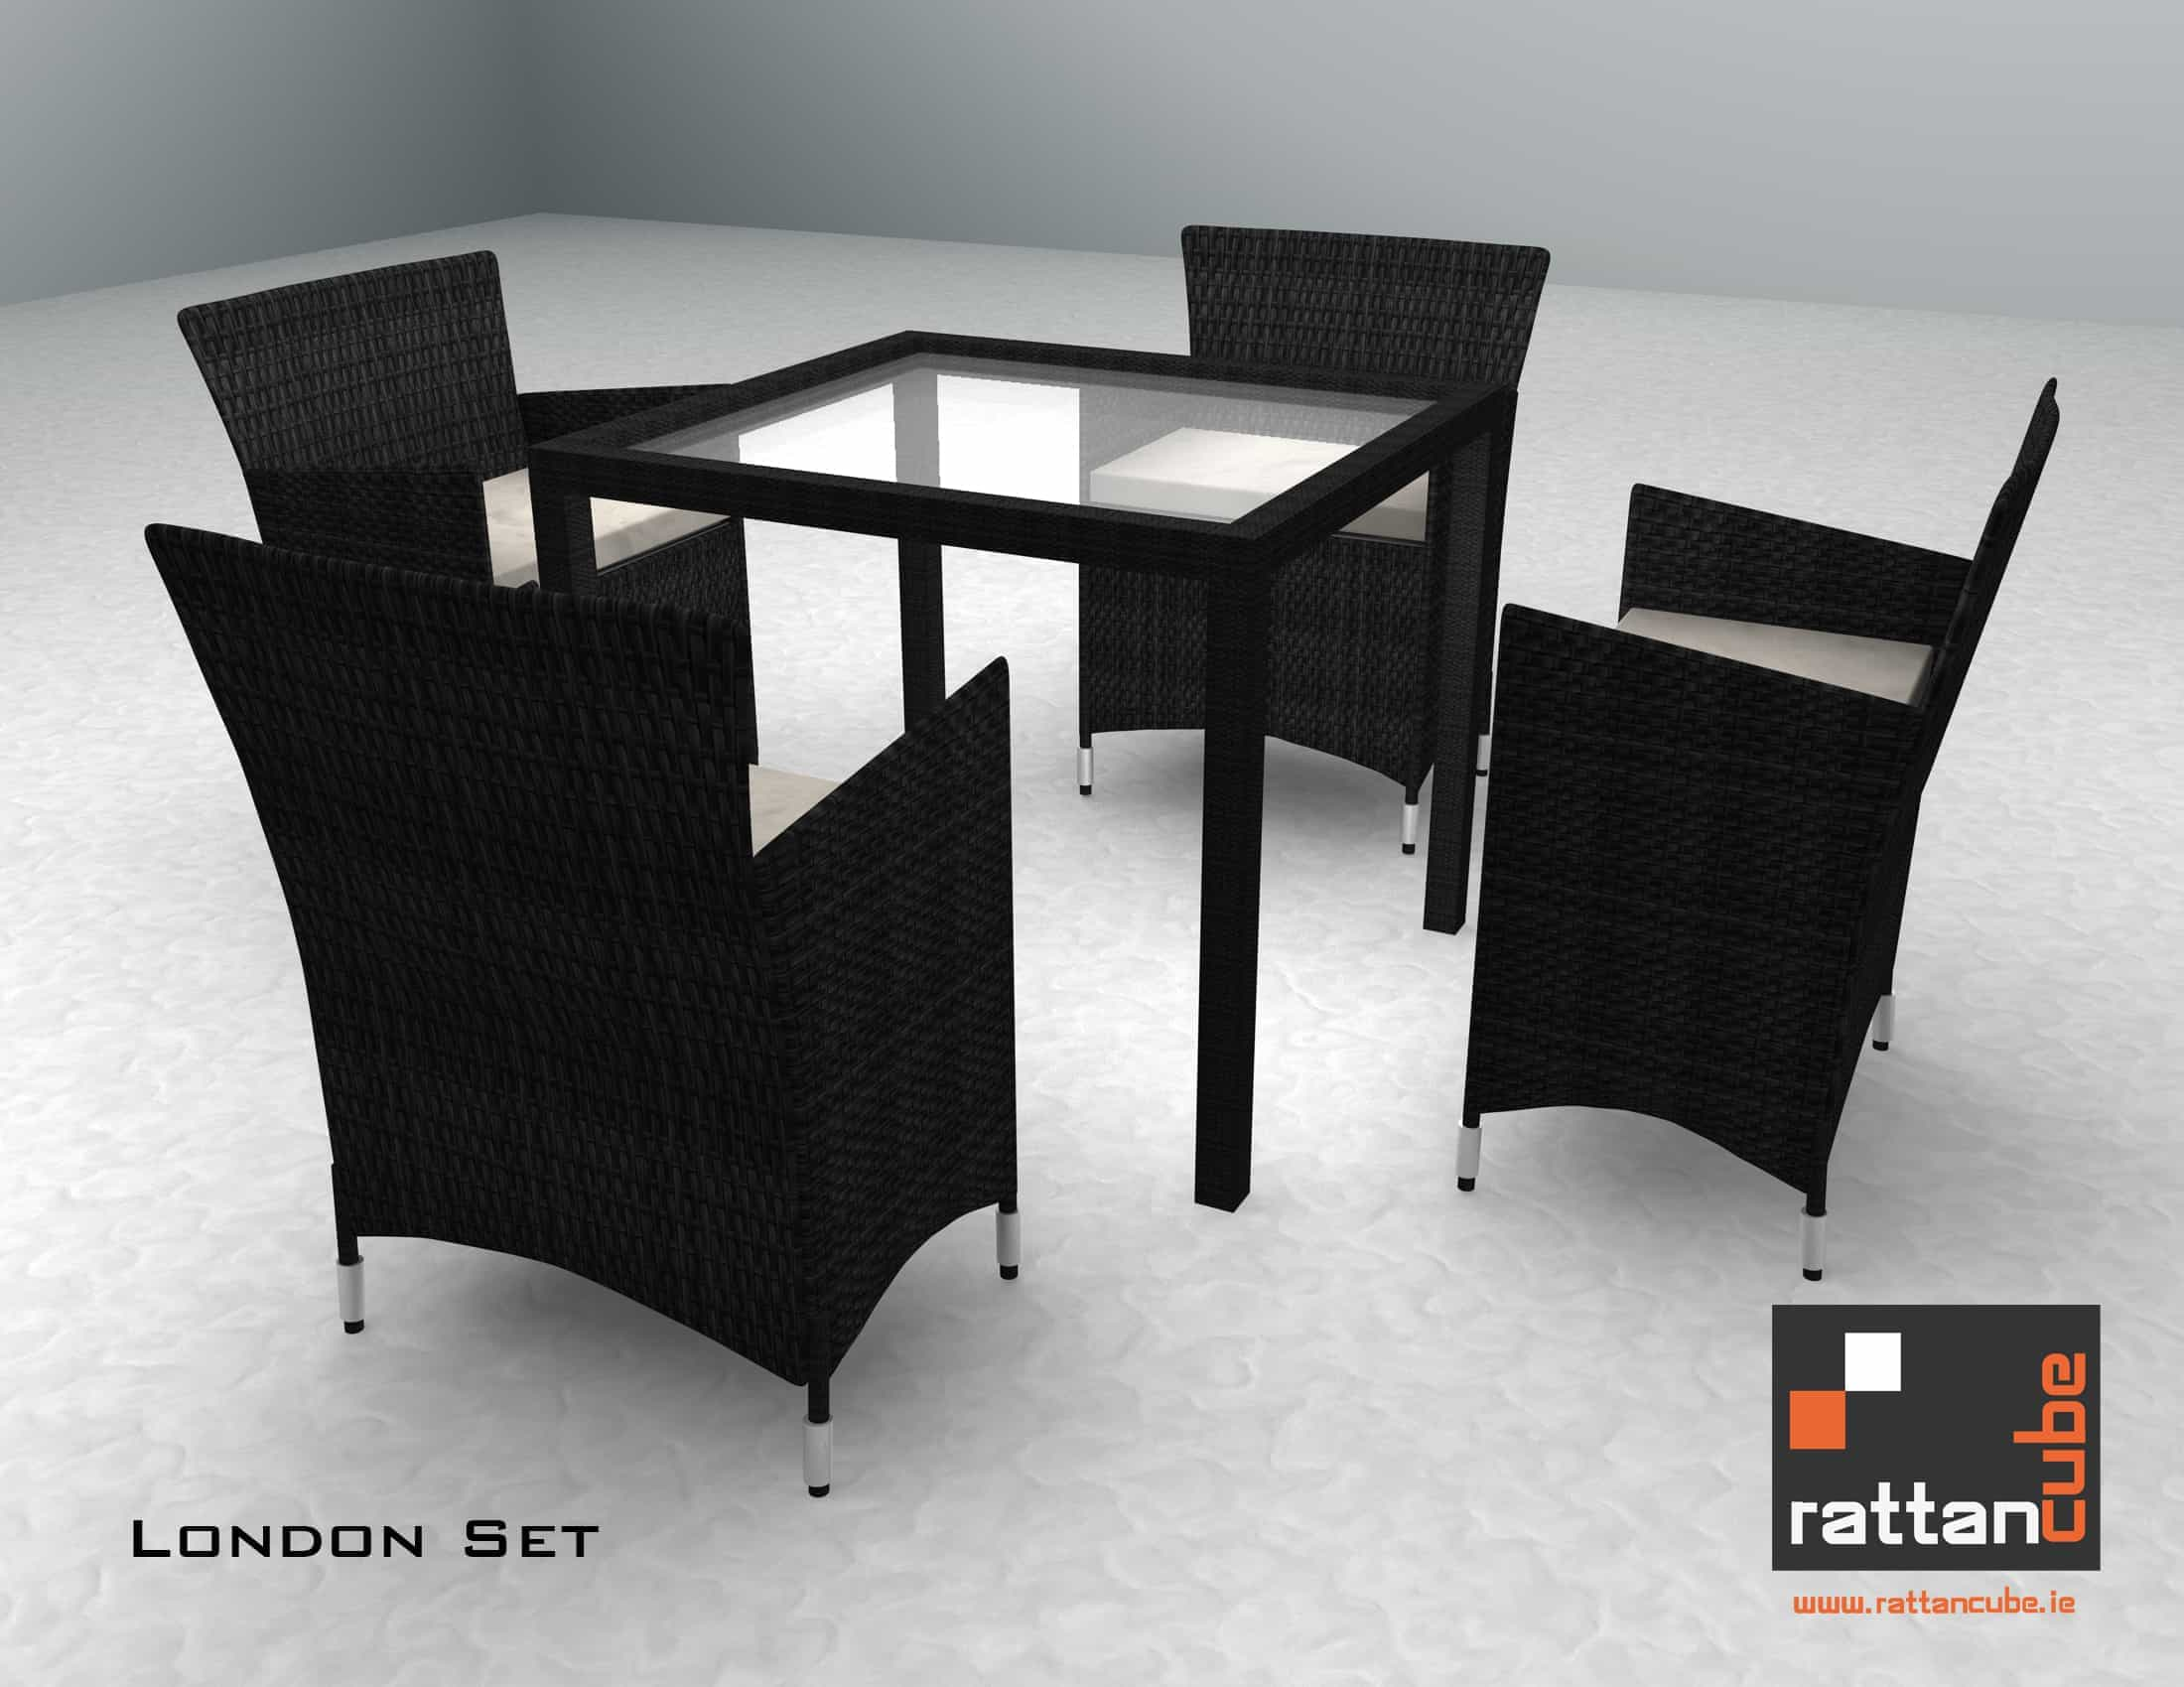 London set final price reduction garden furniture for Outdoor furniture ireland